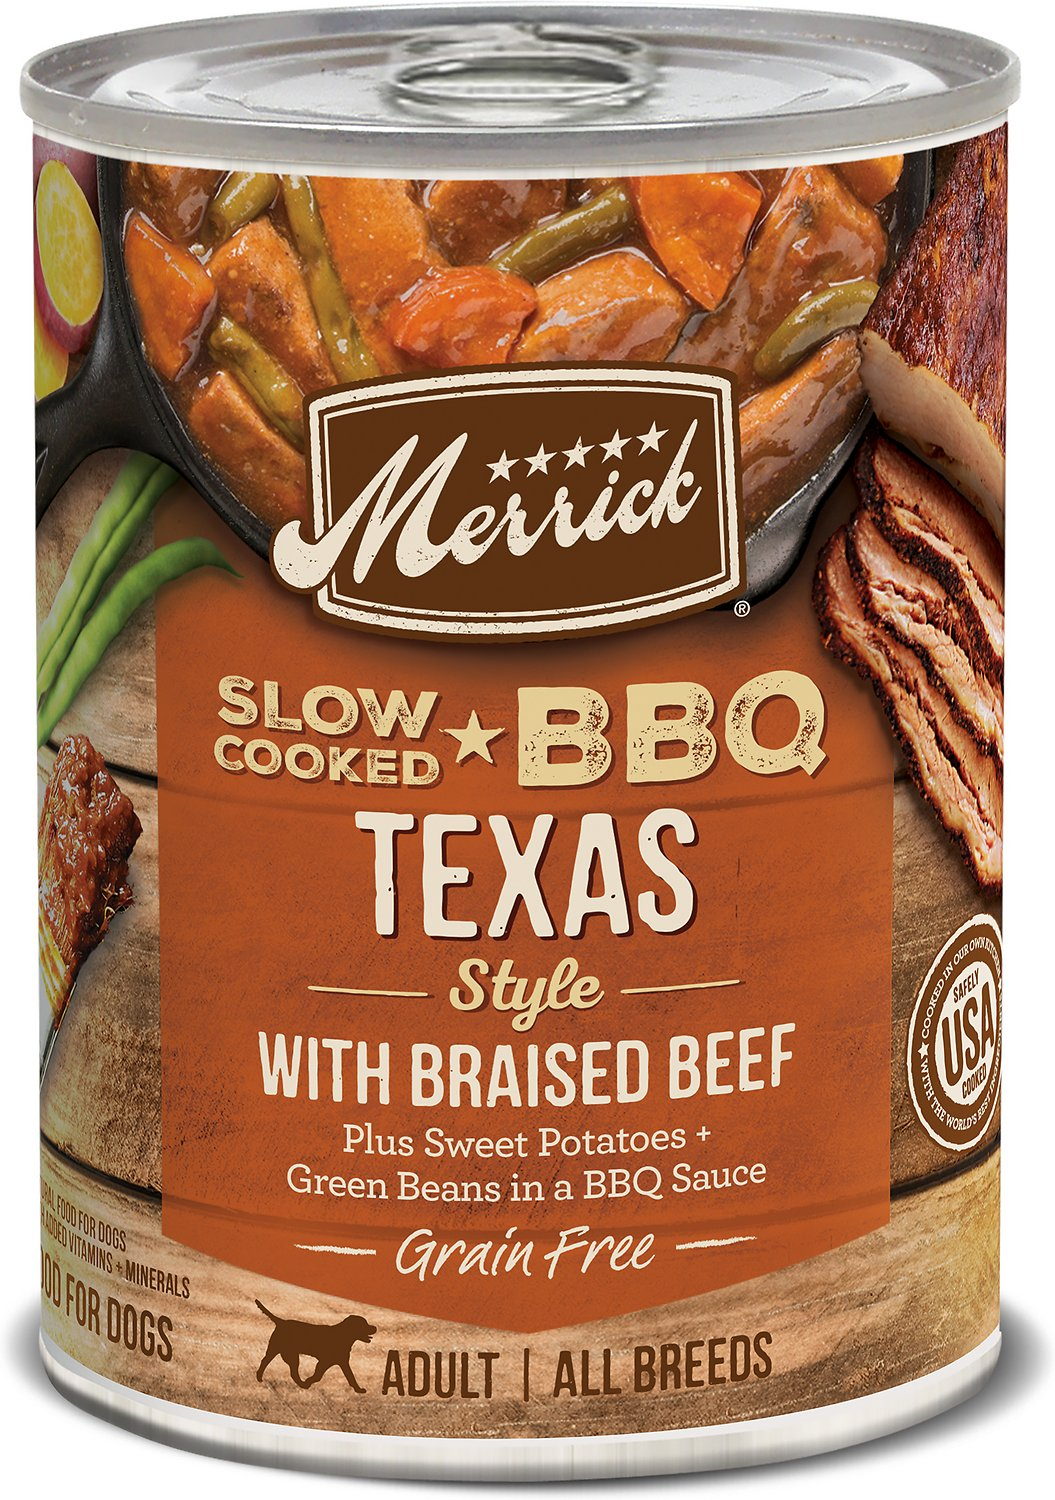 Merrick Slow-Cooked BBQ Texas Style with Braised Beef Canned Dog Food, 12.7-oz, case of 12